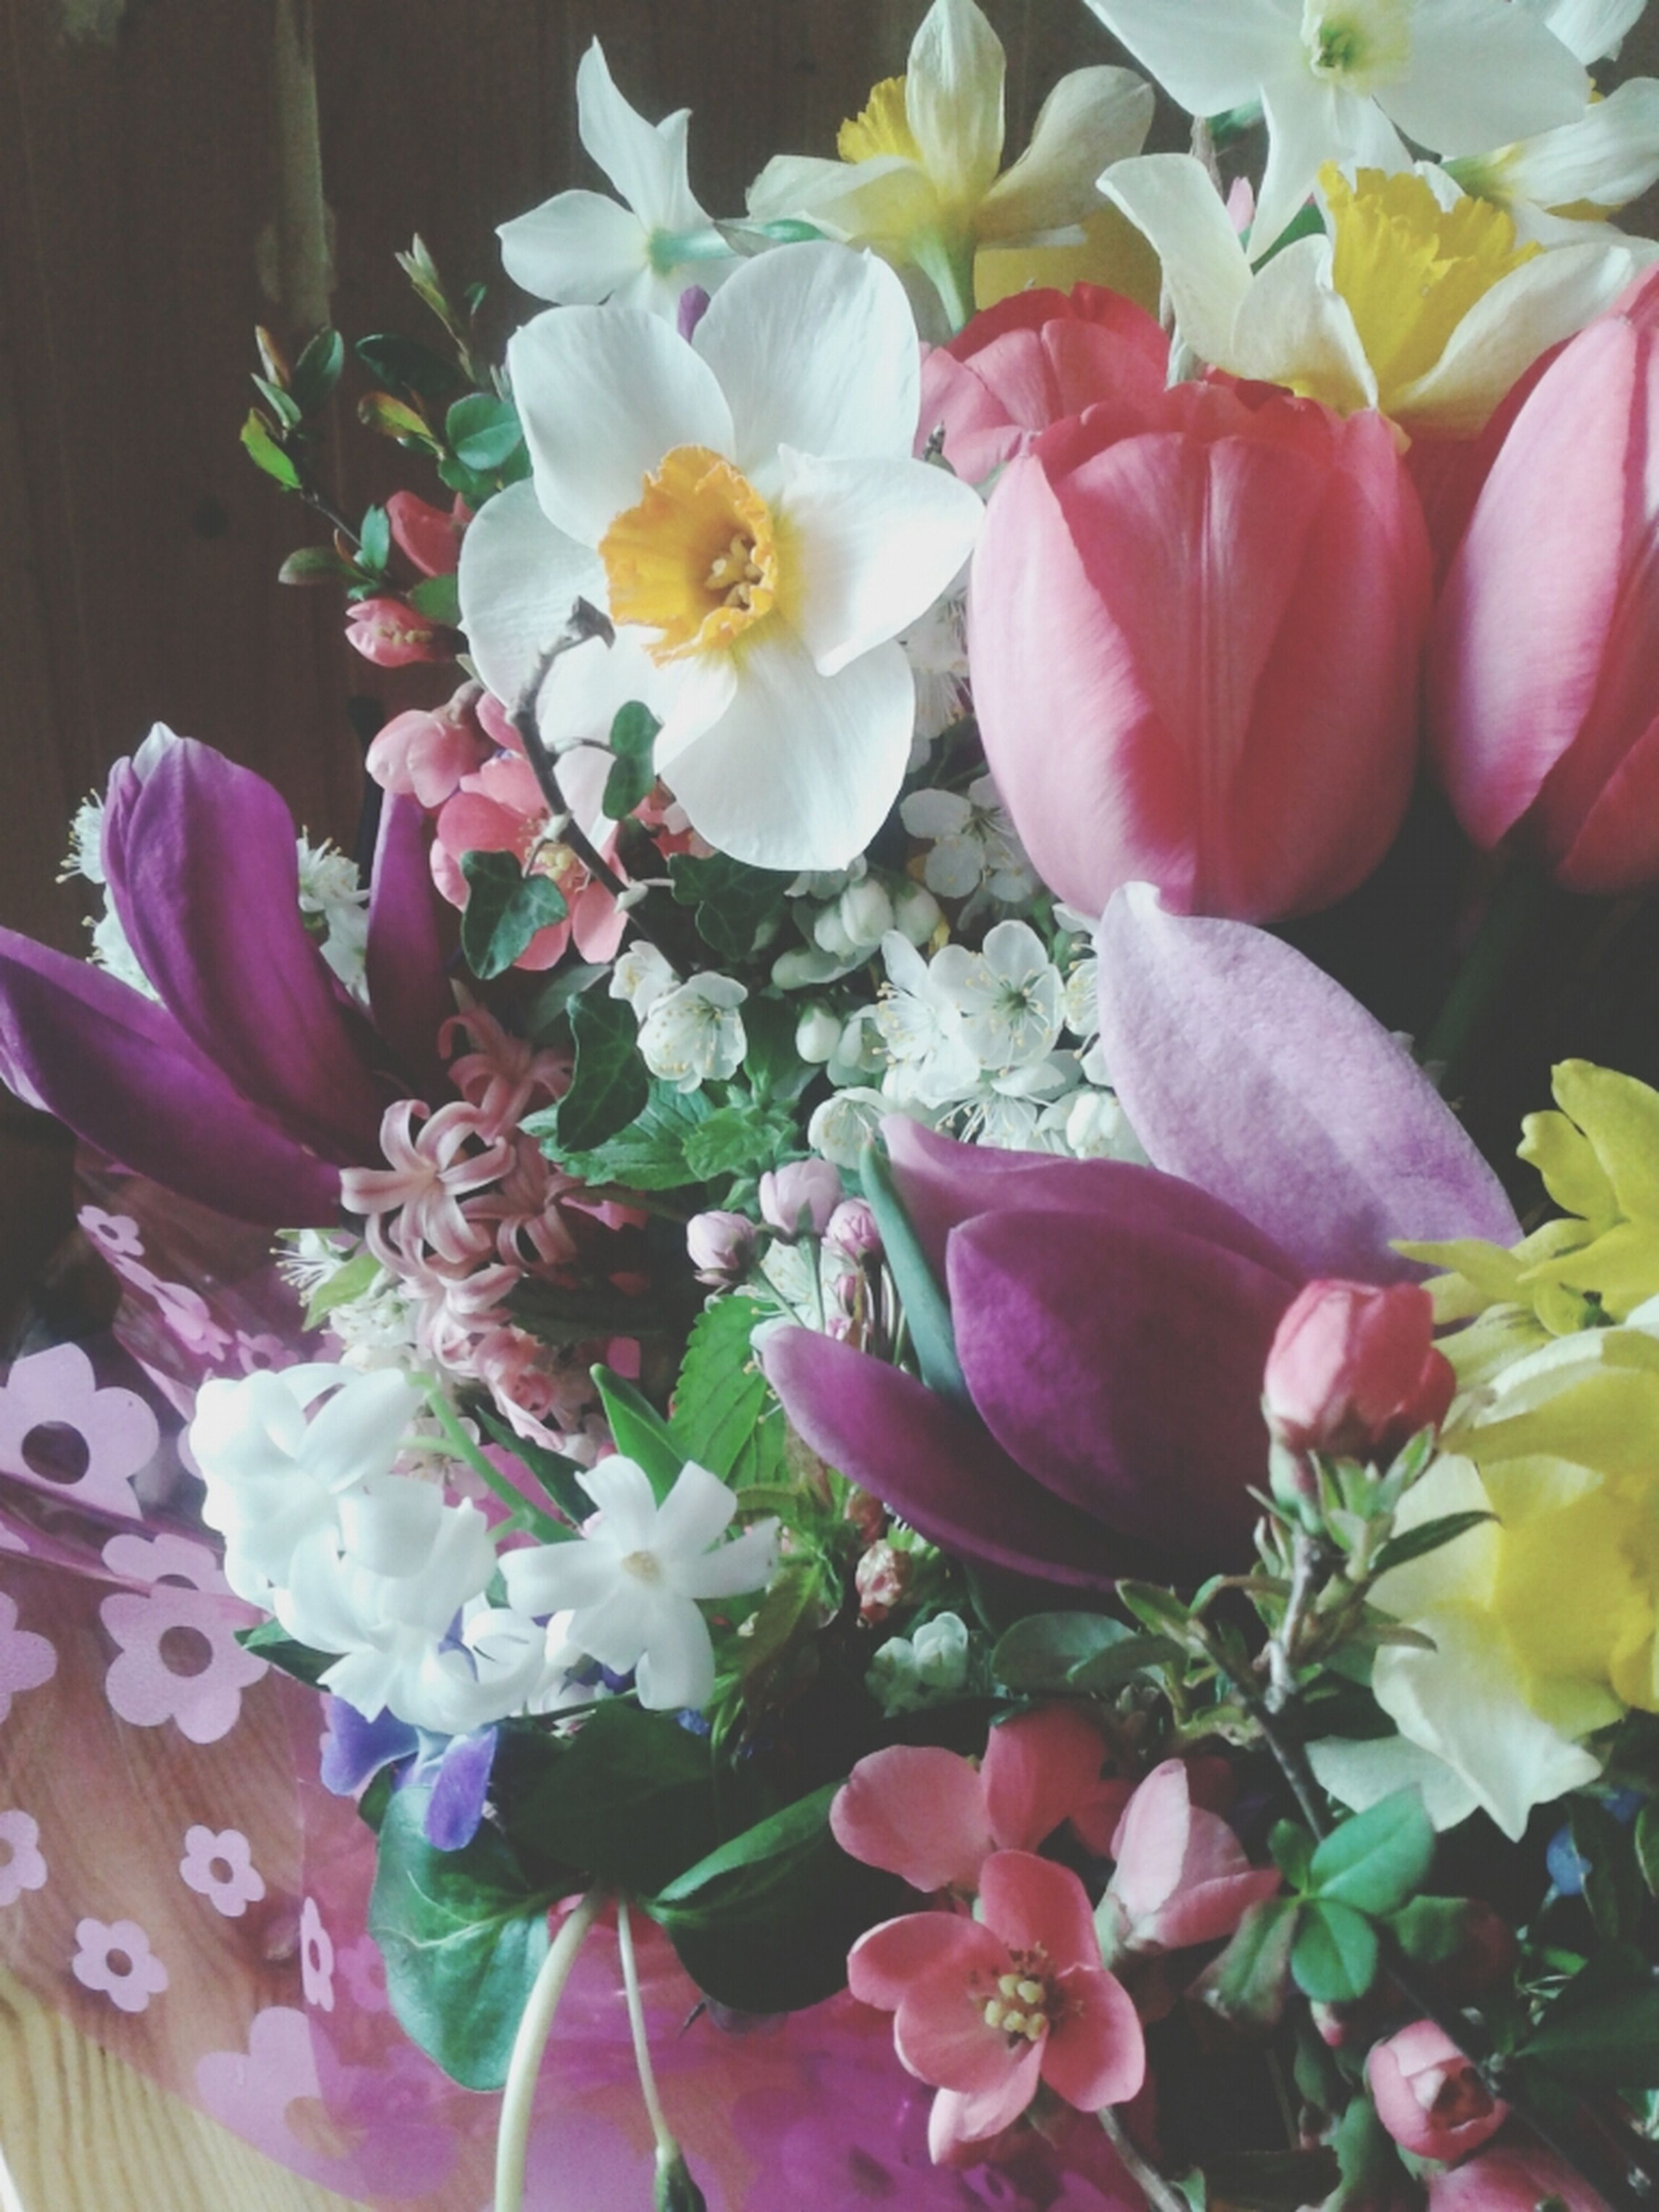 flower, petal, freshness, fragility, flower head, beauty in nature, indoors, growth, pink color, nature, close-up, blooming, white color, plant, high angle view, bouquet, no people, tulip, blossom, vase